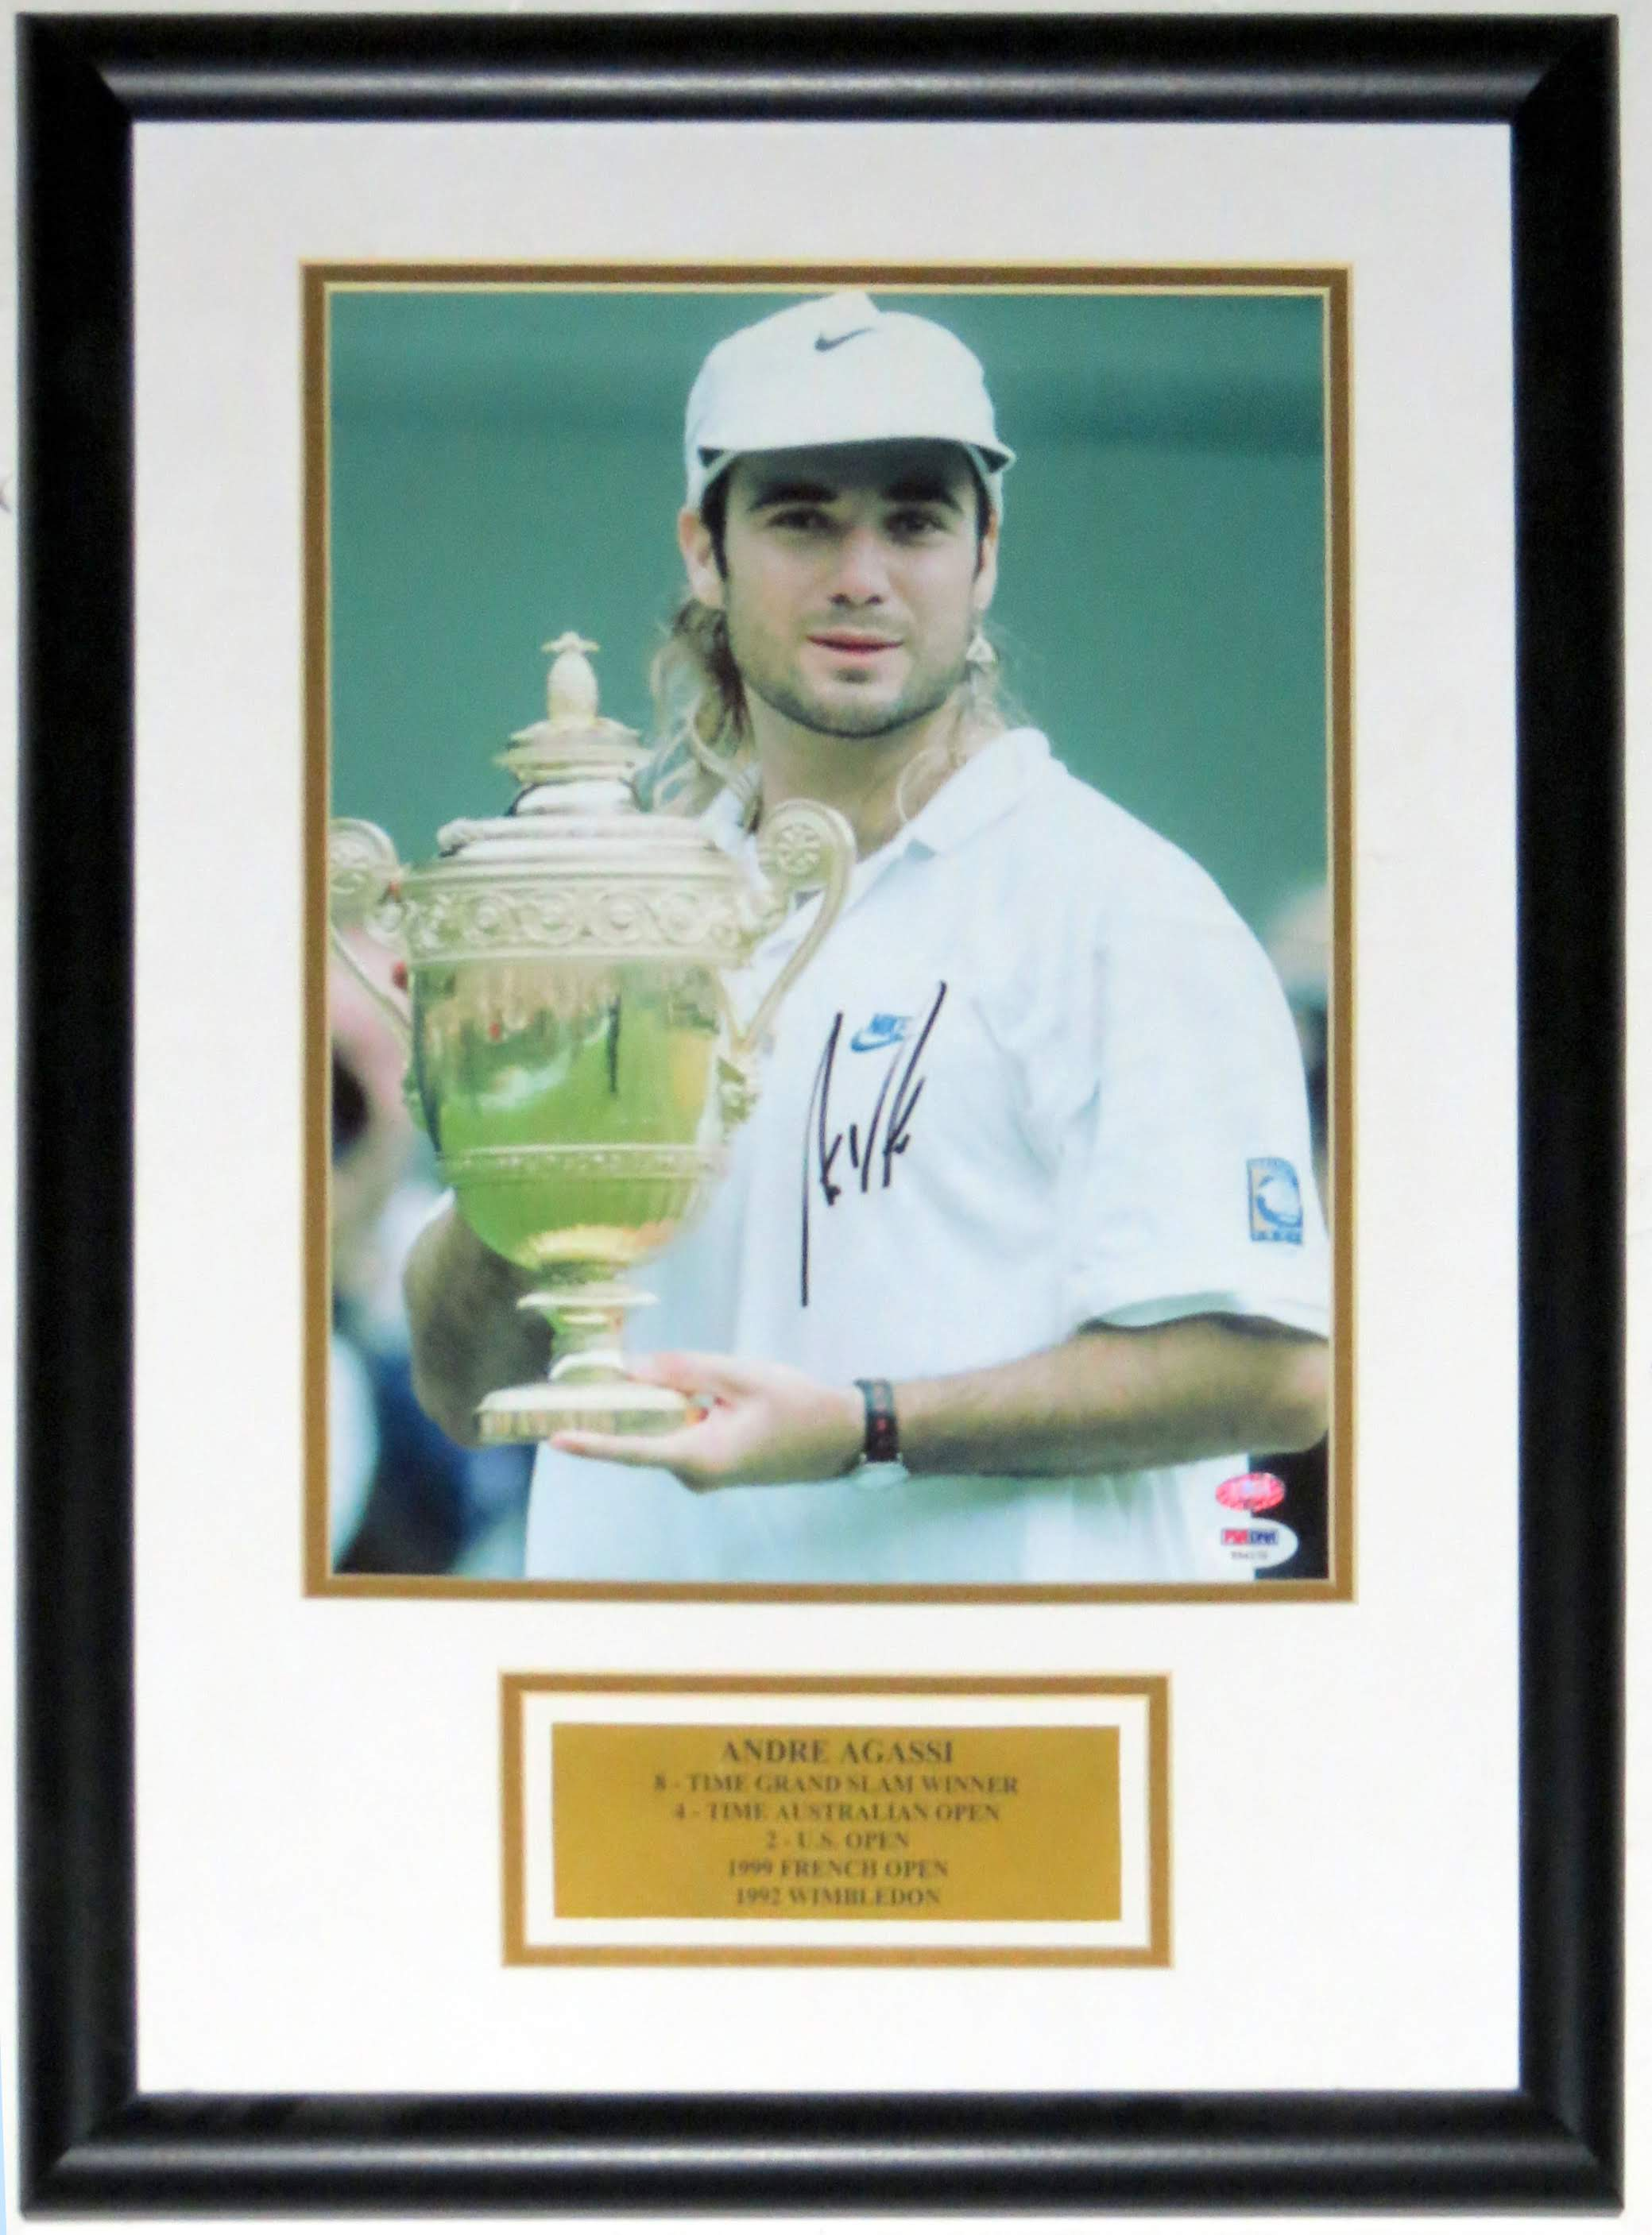 Andre Agassi Signed Wimbledon Championship 11x14 Photo - PSA DNA COA Authenticated - Professionally Framed & Plate